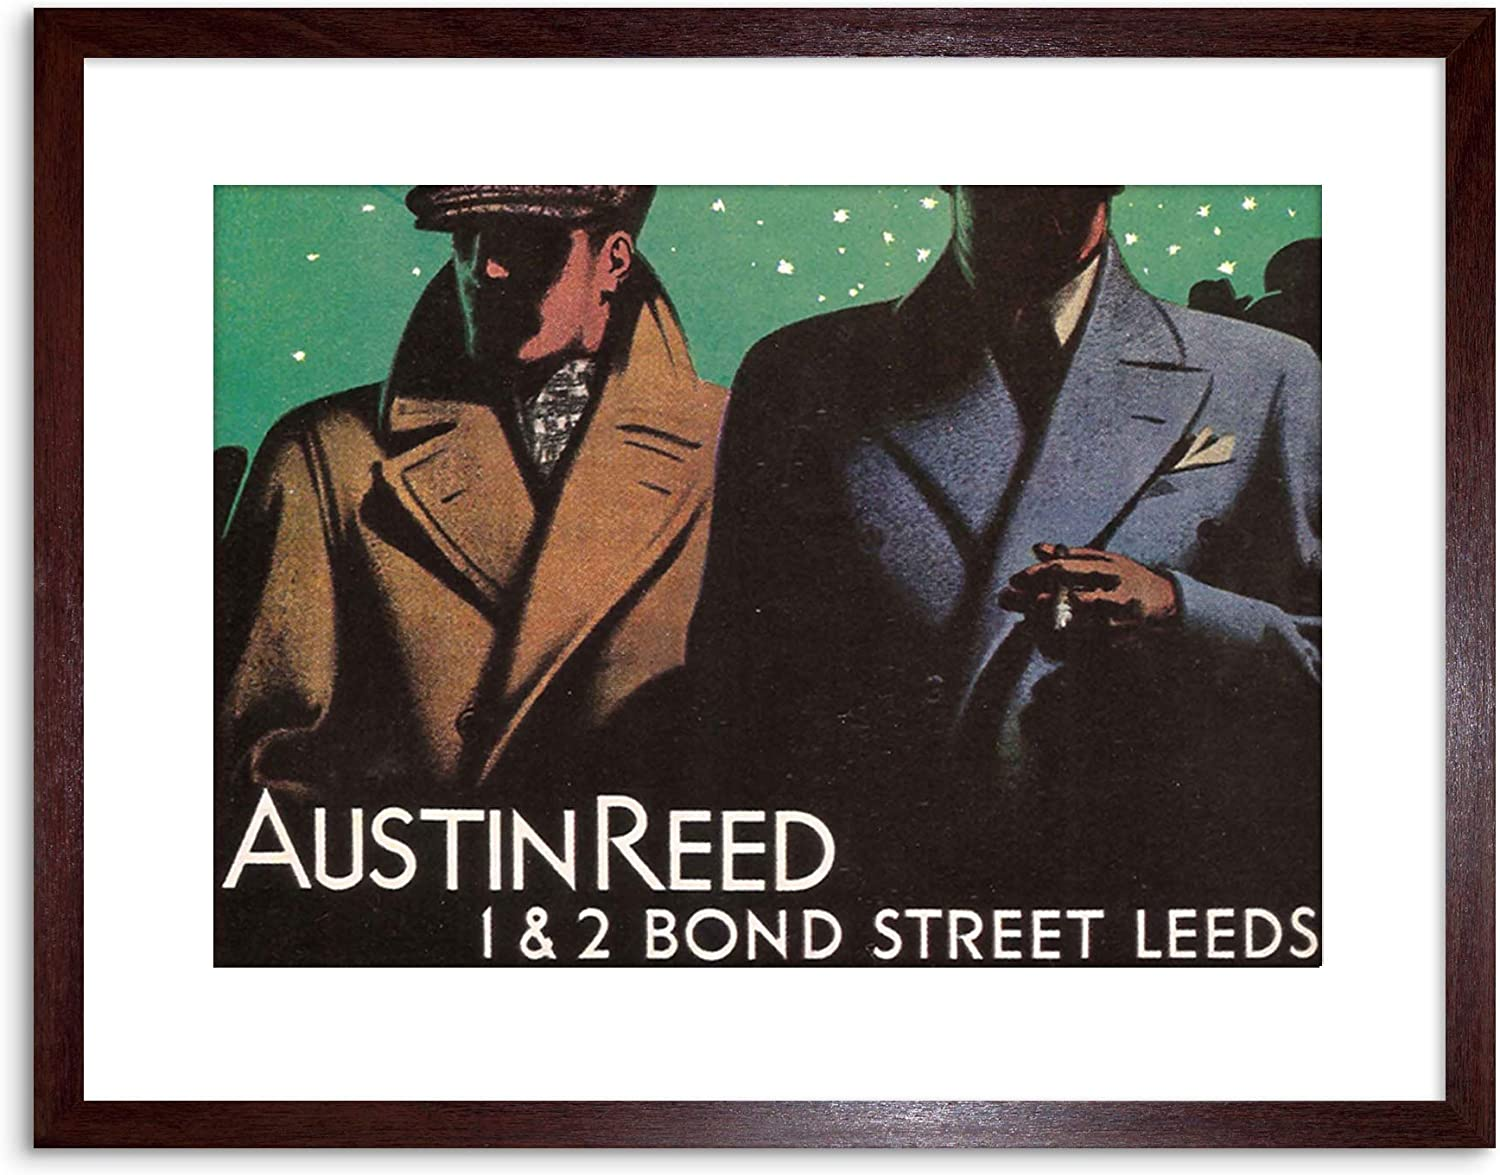 Wee Blue Coo Ad Austin Reed Bond Street Leeds Yorkshire Framed Print F97x2525 Amazon Co Uk Kitchen Home